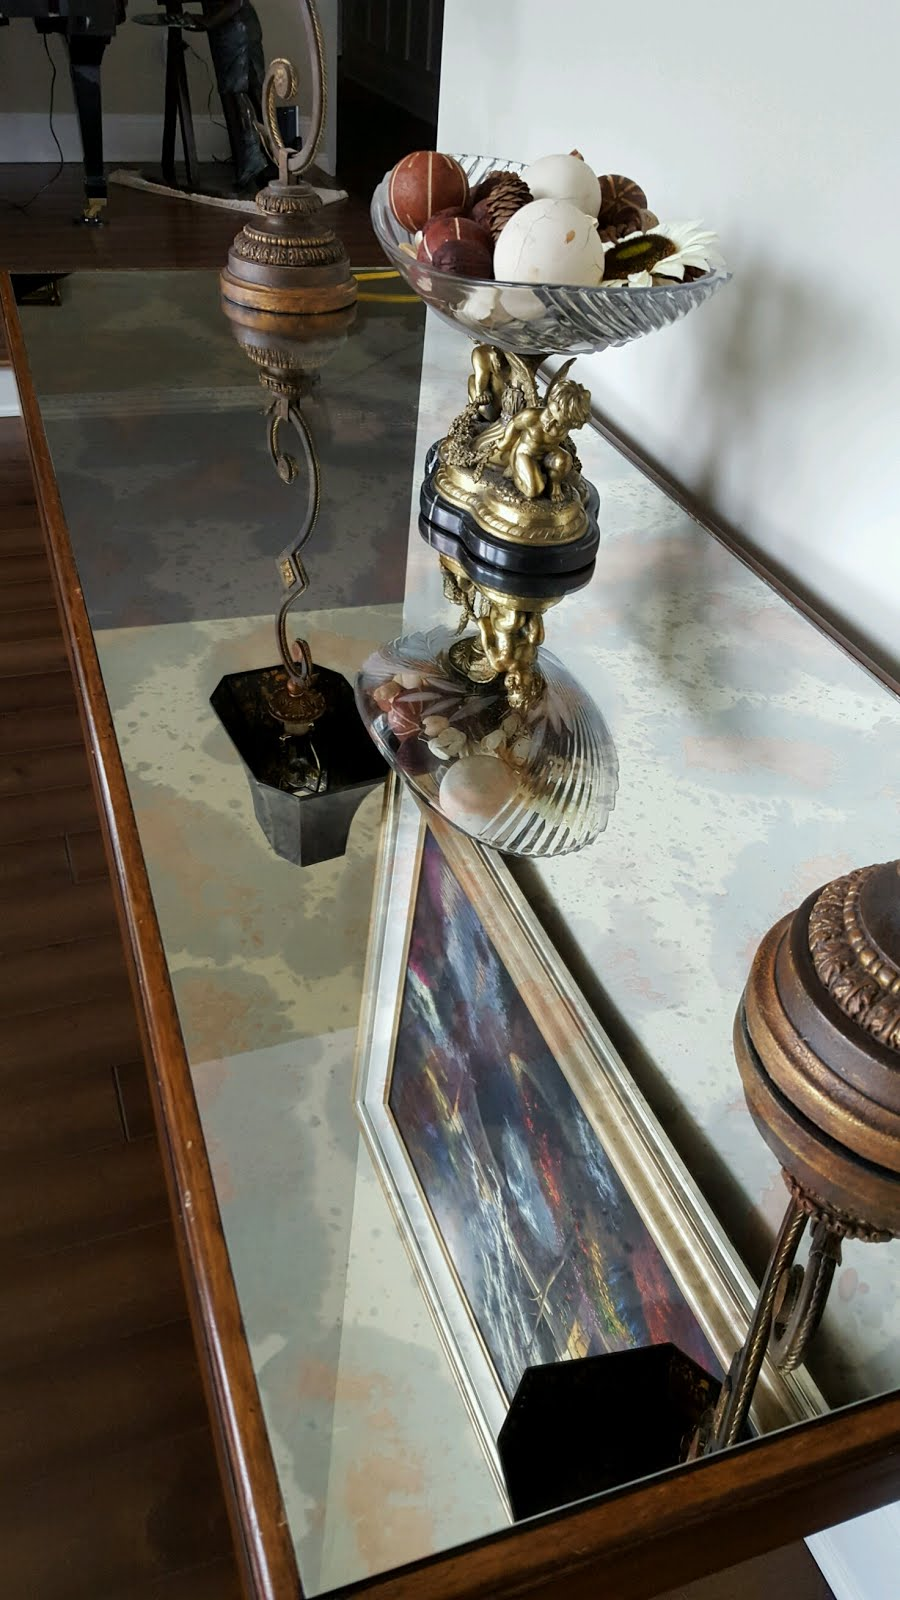 Polish Off Your table  With Our Antique Mirror